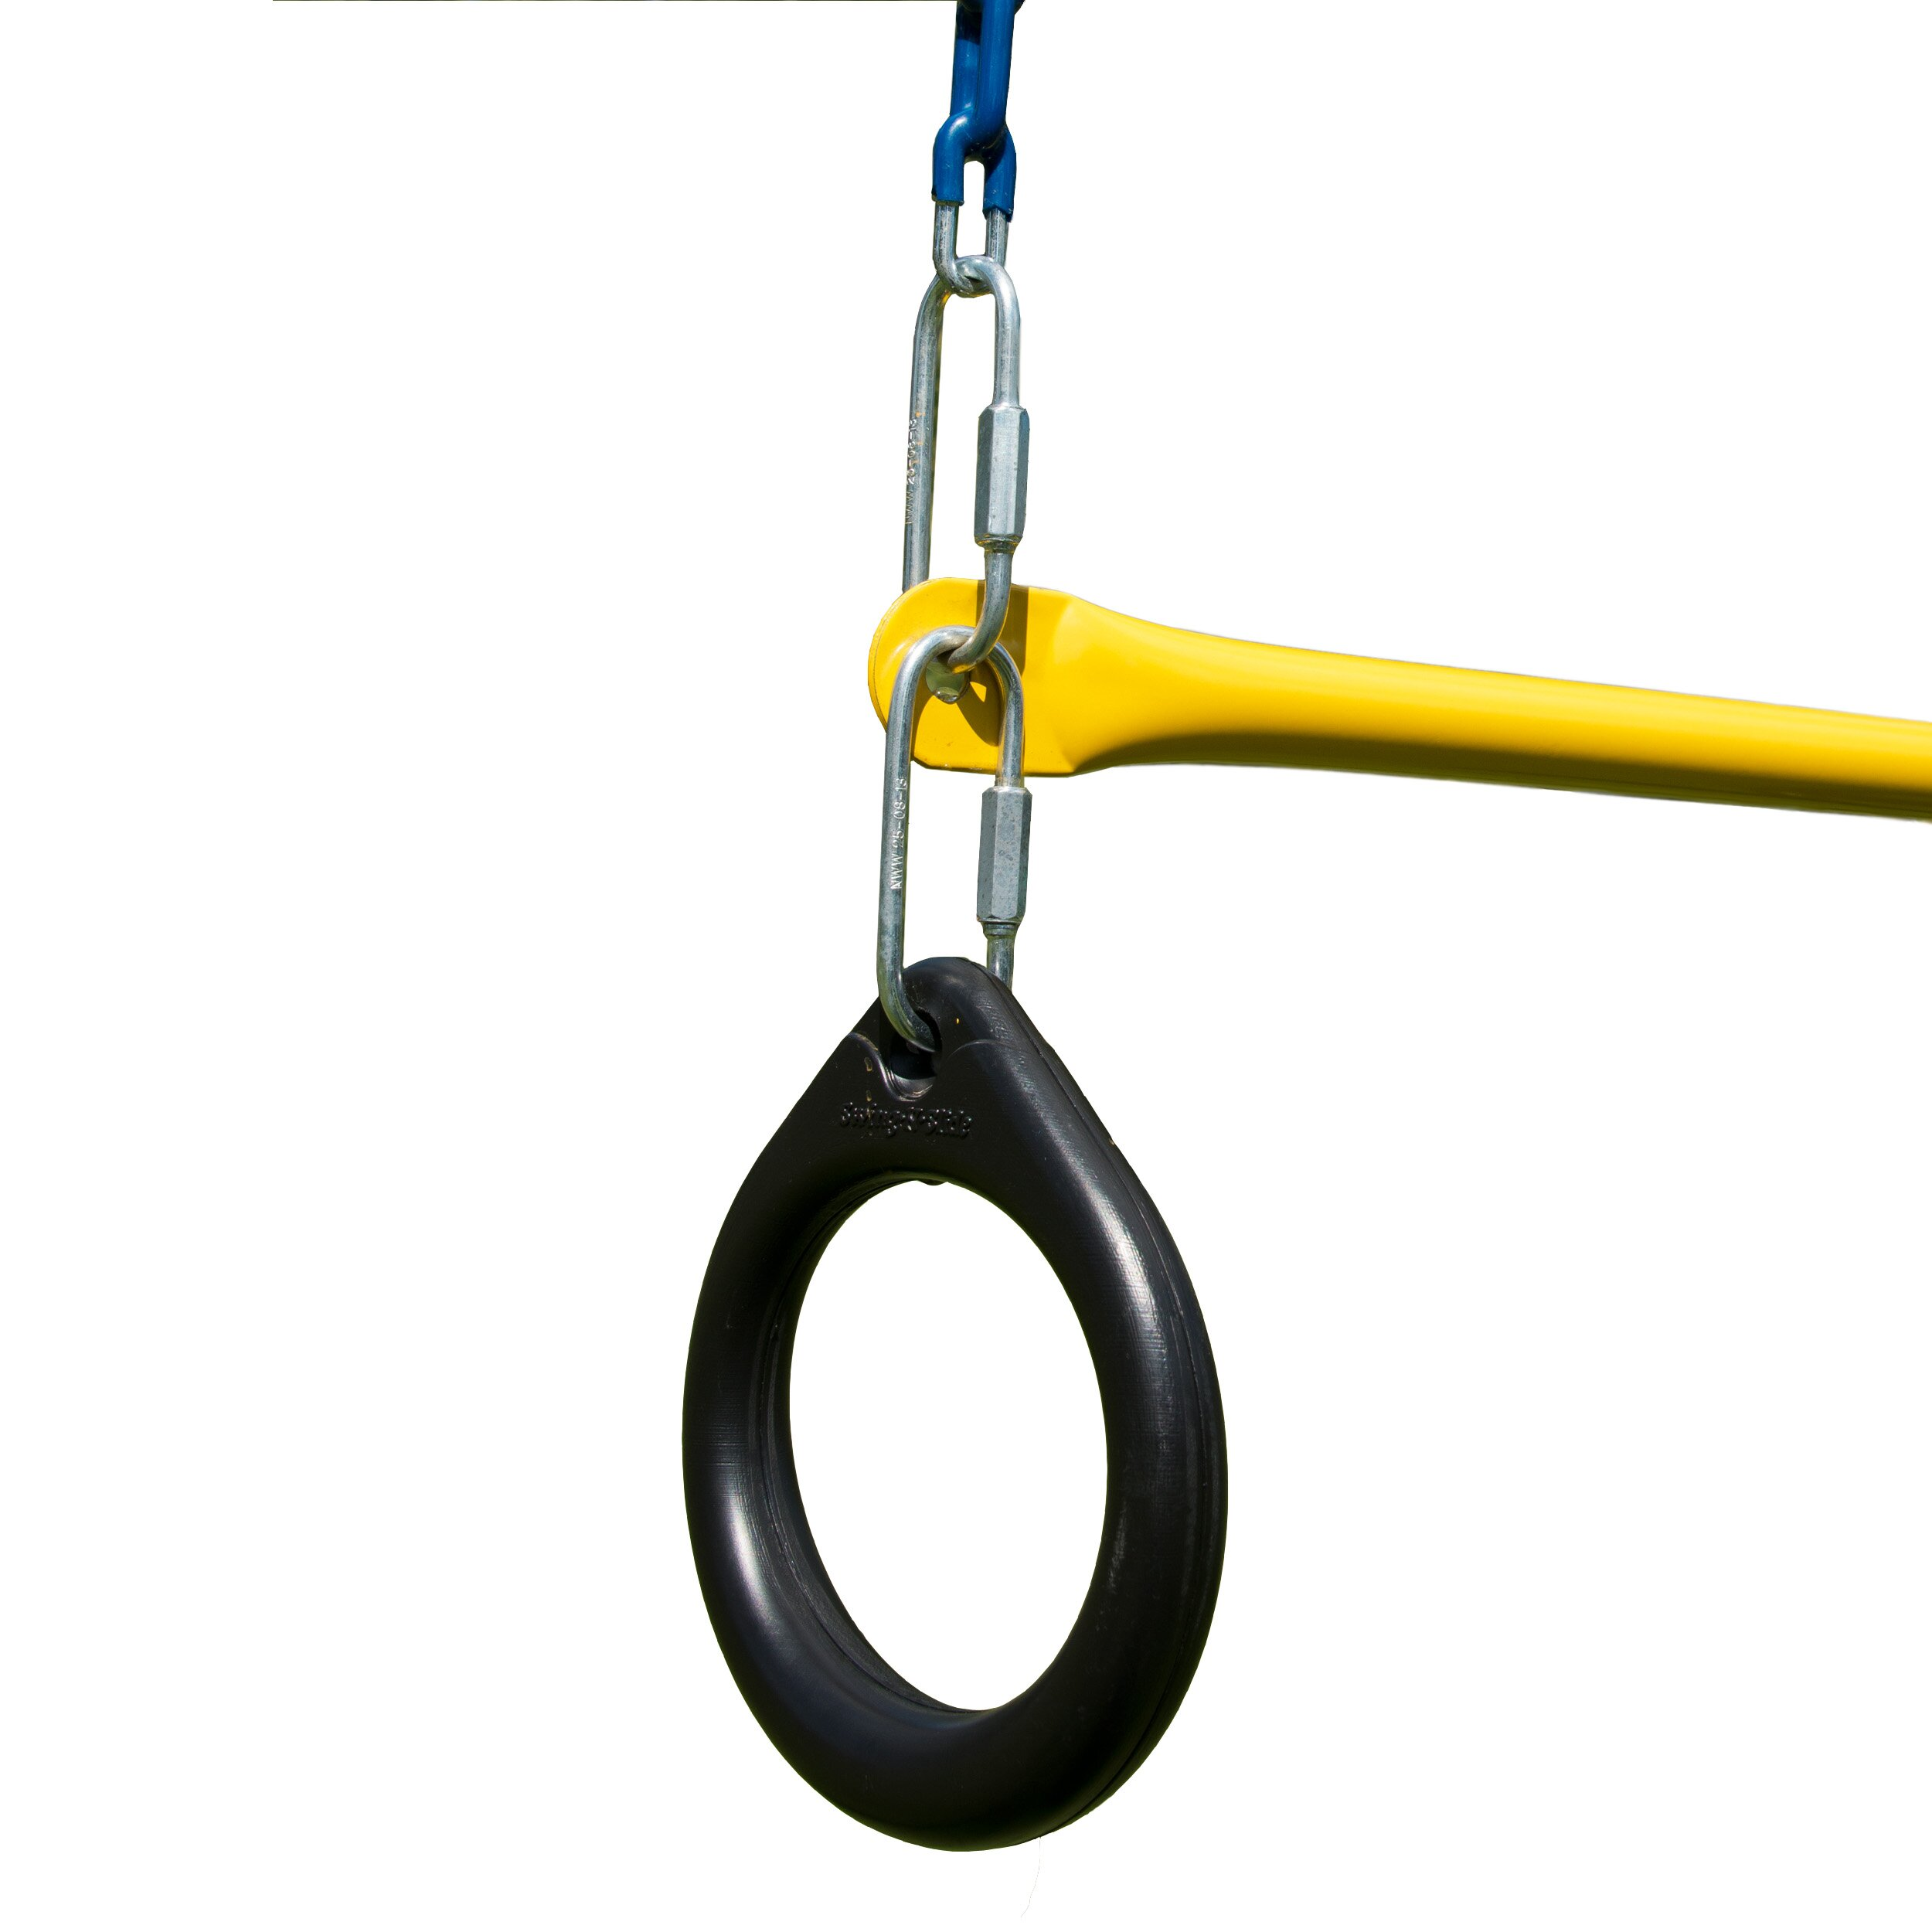 Swing n Slide Ring Trapeze Bar Combo Swing amp Reviews  : Swing n Slide Ring Trapeze Bar Combo Swing NE 4488 from www.wayfair.com size 2500 x 2500 jpeg 183kB